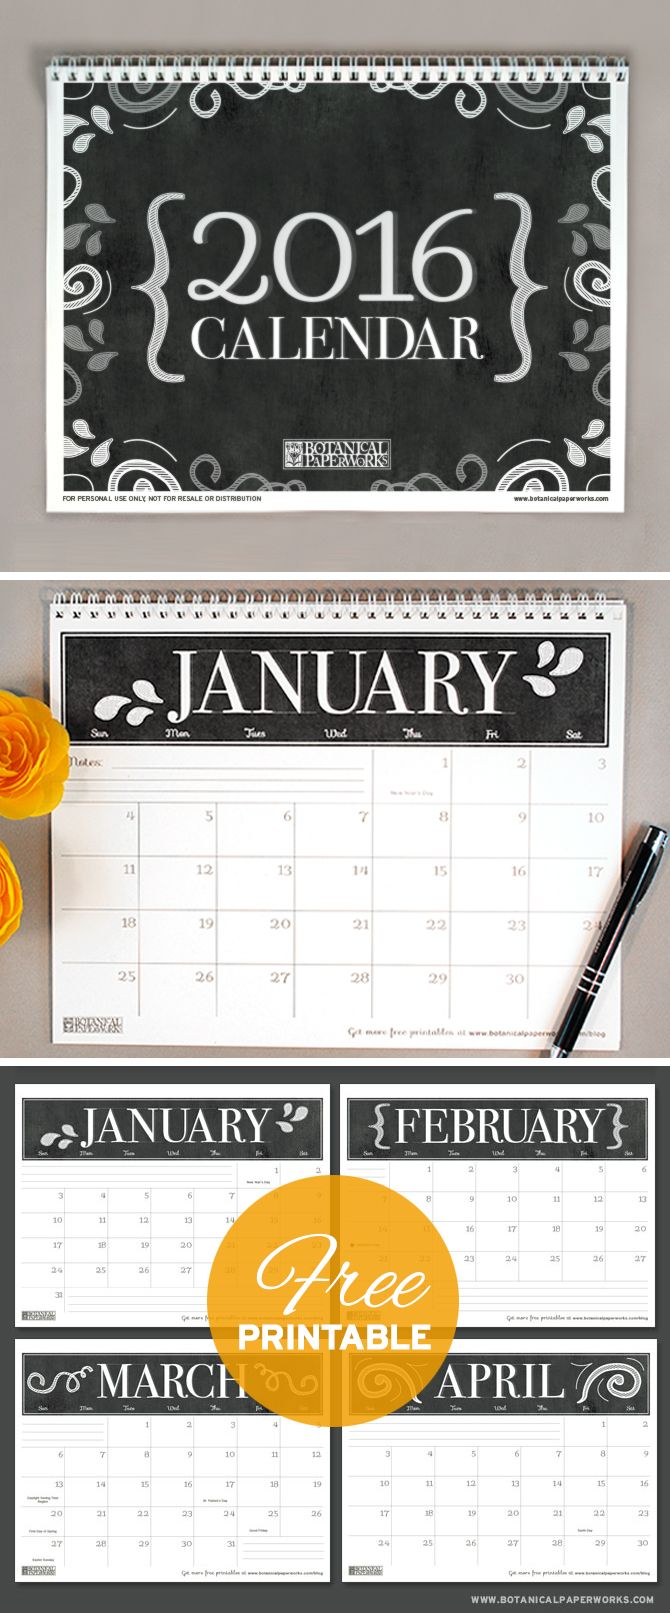 With a black and white color scheme, this 2016 #Chalkboard #Calendar is perfect…